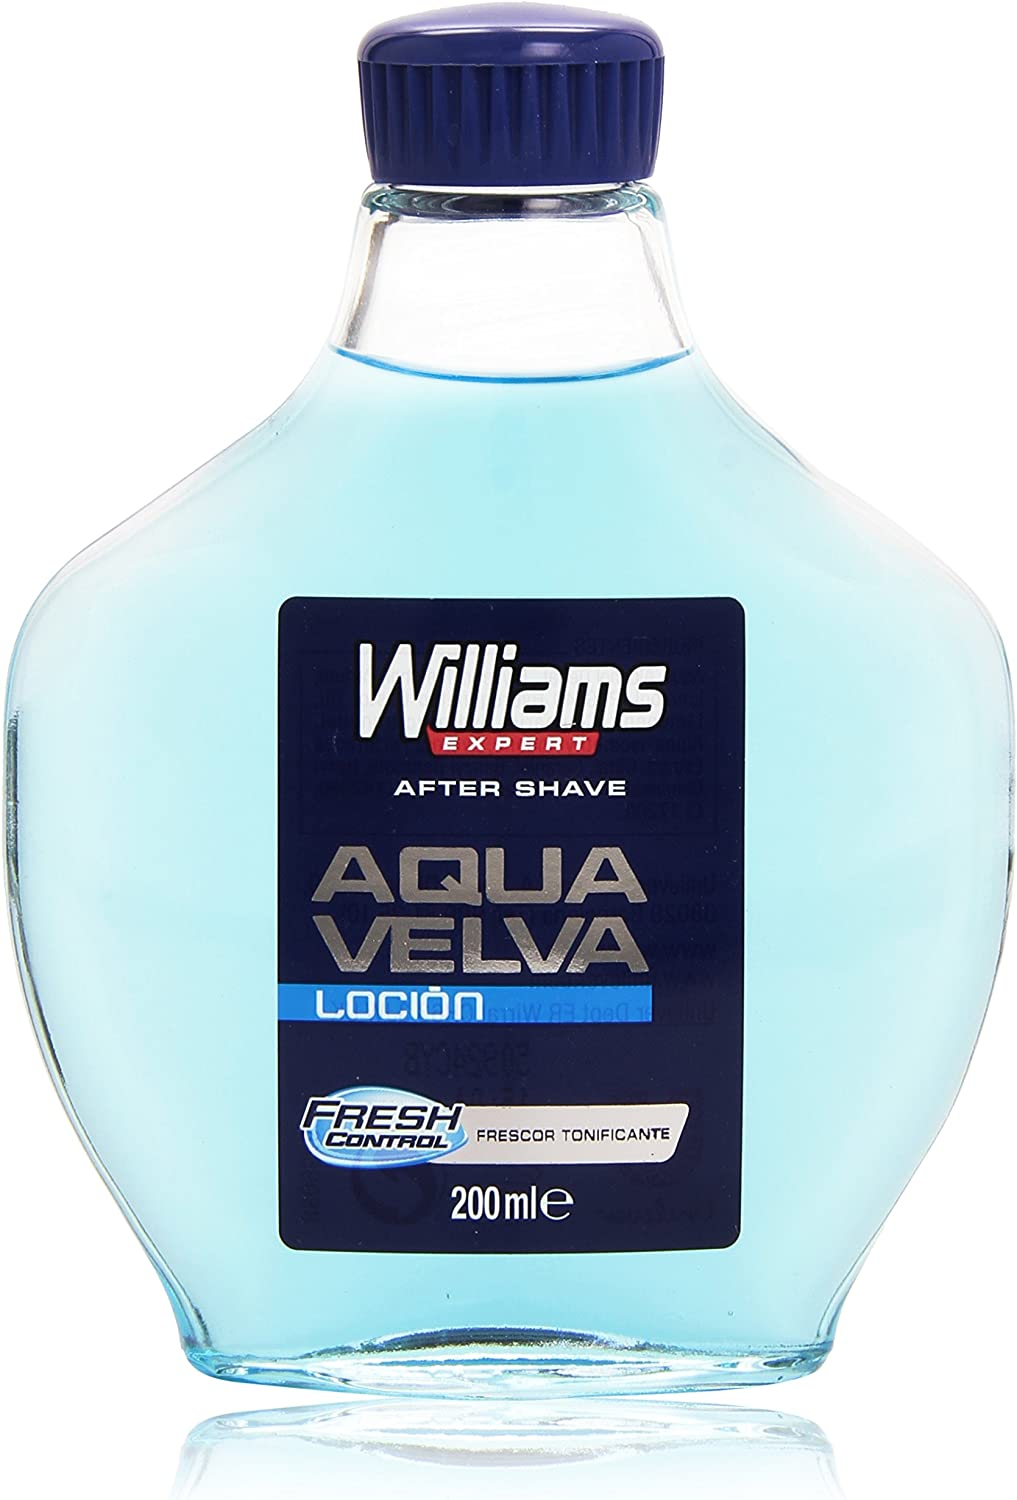 Williams Aqua Velva Loción Aftershave - 200 ml: Amazon.es: Salud y ...